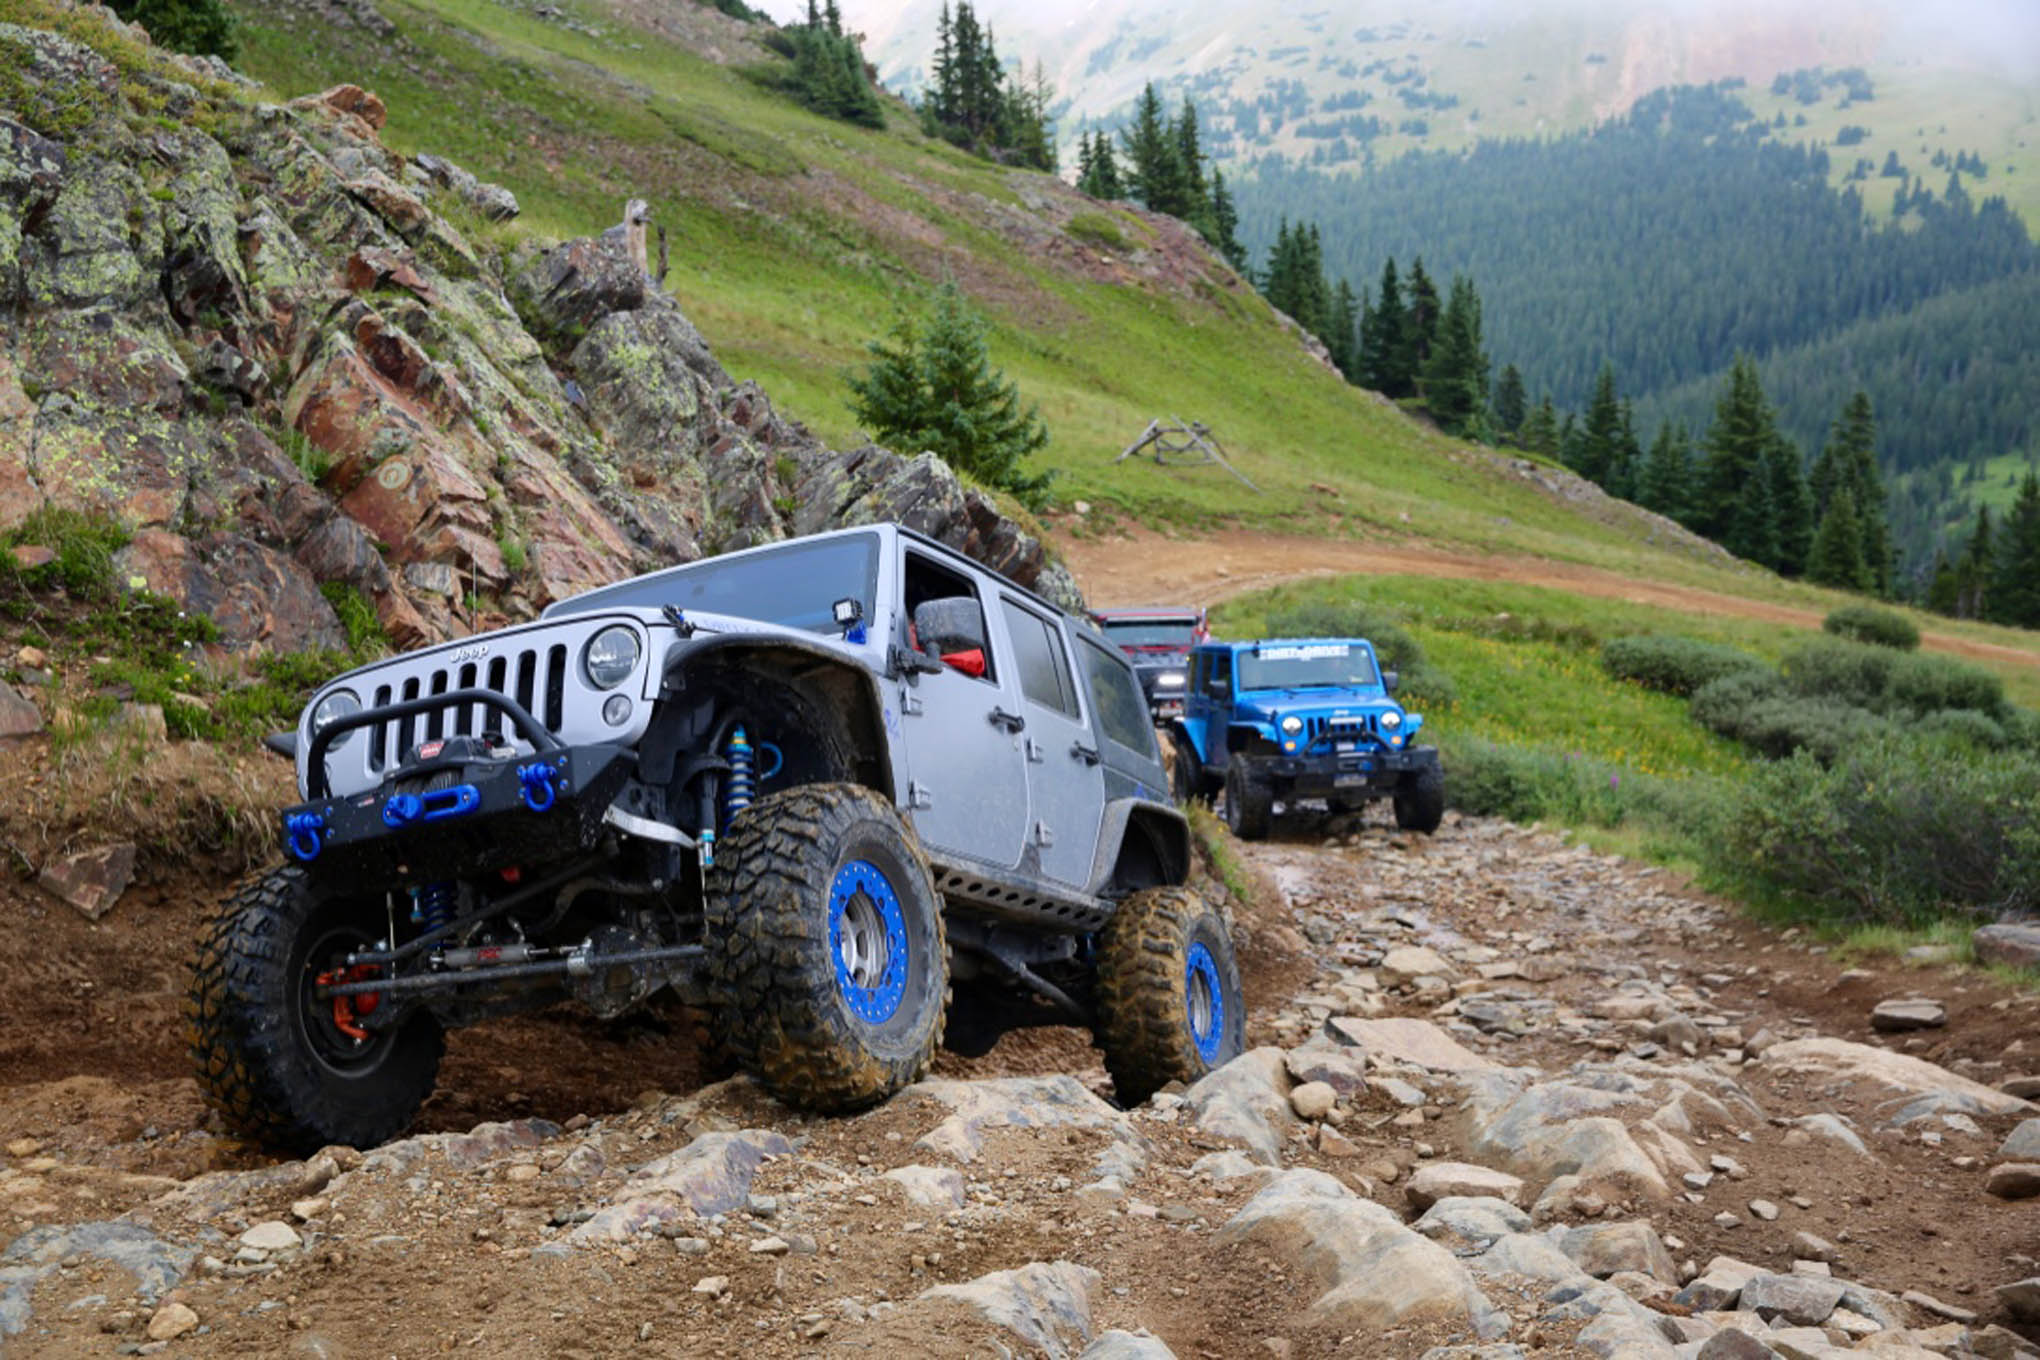 A '13 JK Unlimited carefully negotiates a gnarly section of Radical Hill.